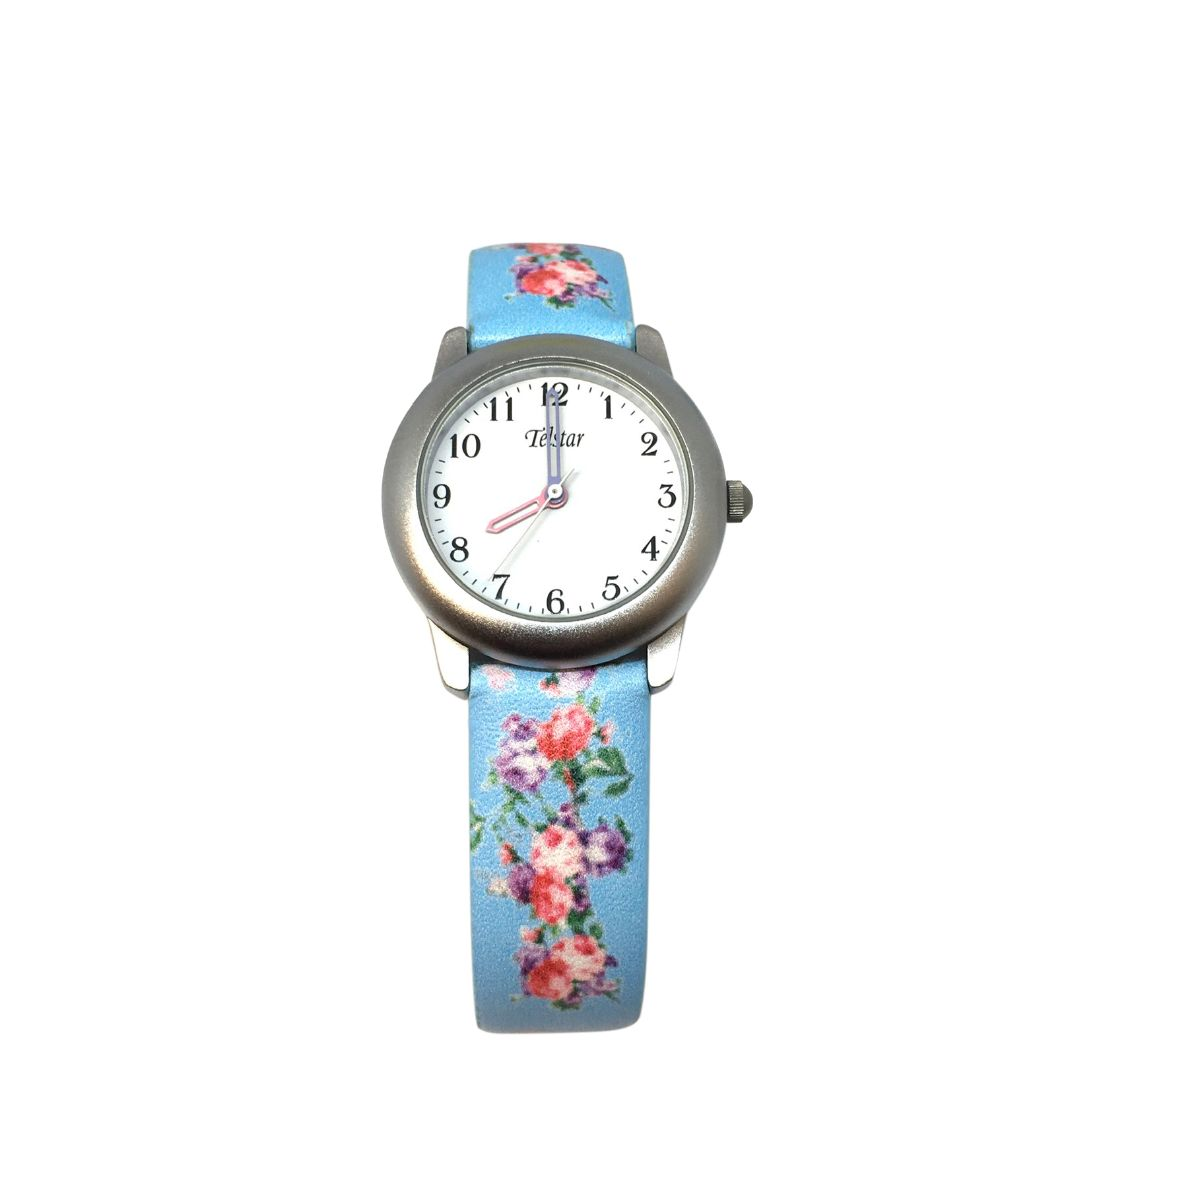 Telstar Watch With Floral Strap Design - Blue Colour